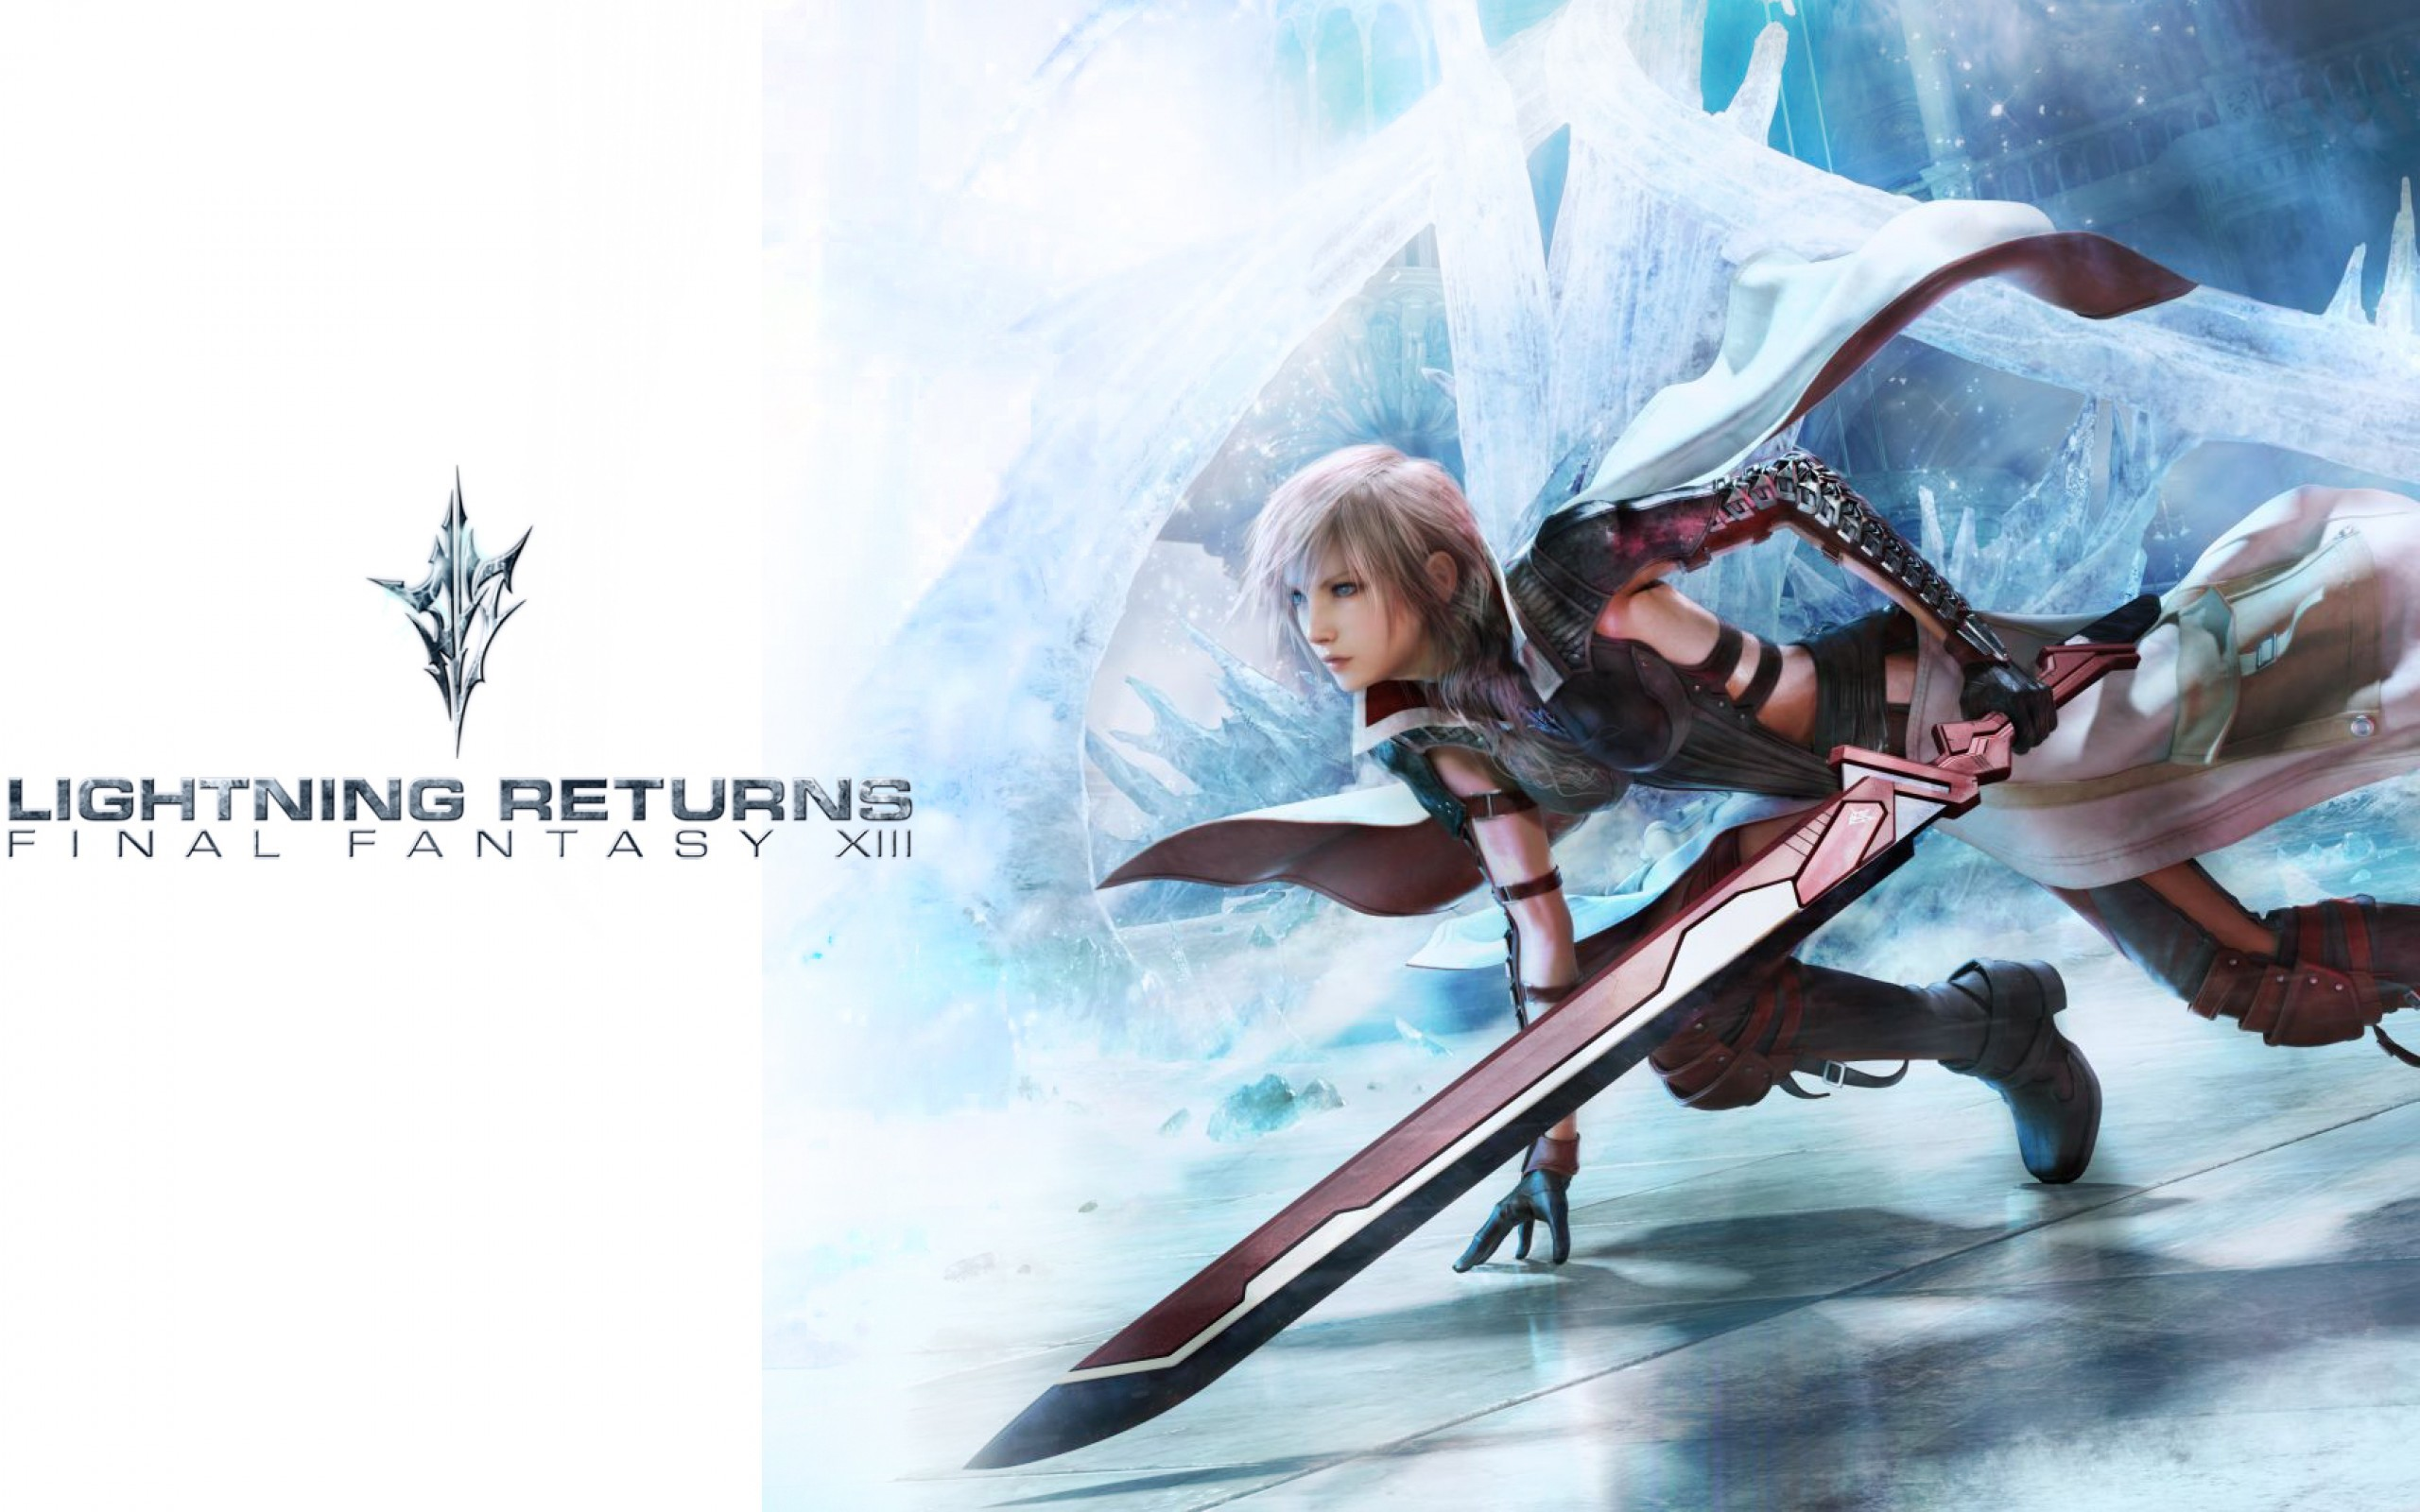 2560x1600 Ff13 Lightning Returns Wallpaper 6 Final Fantasy